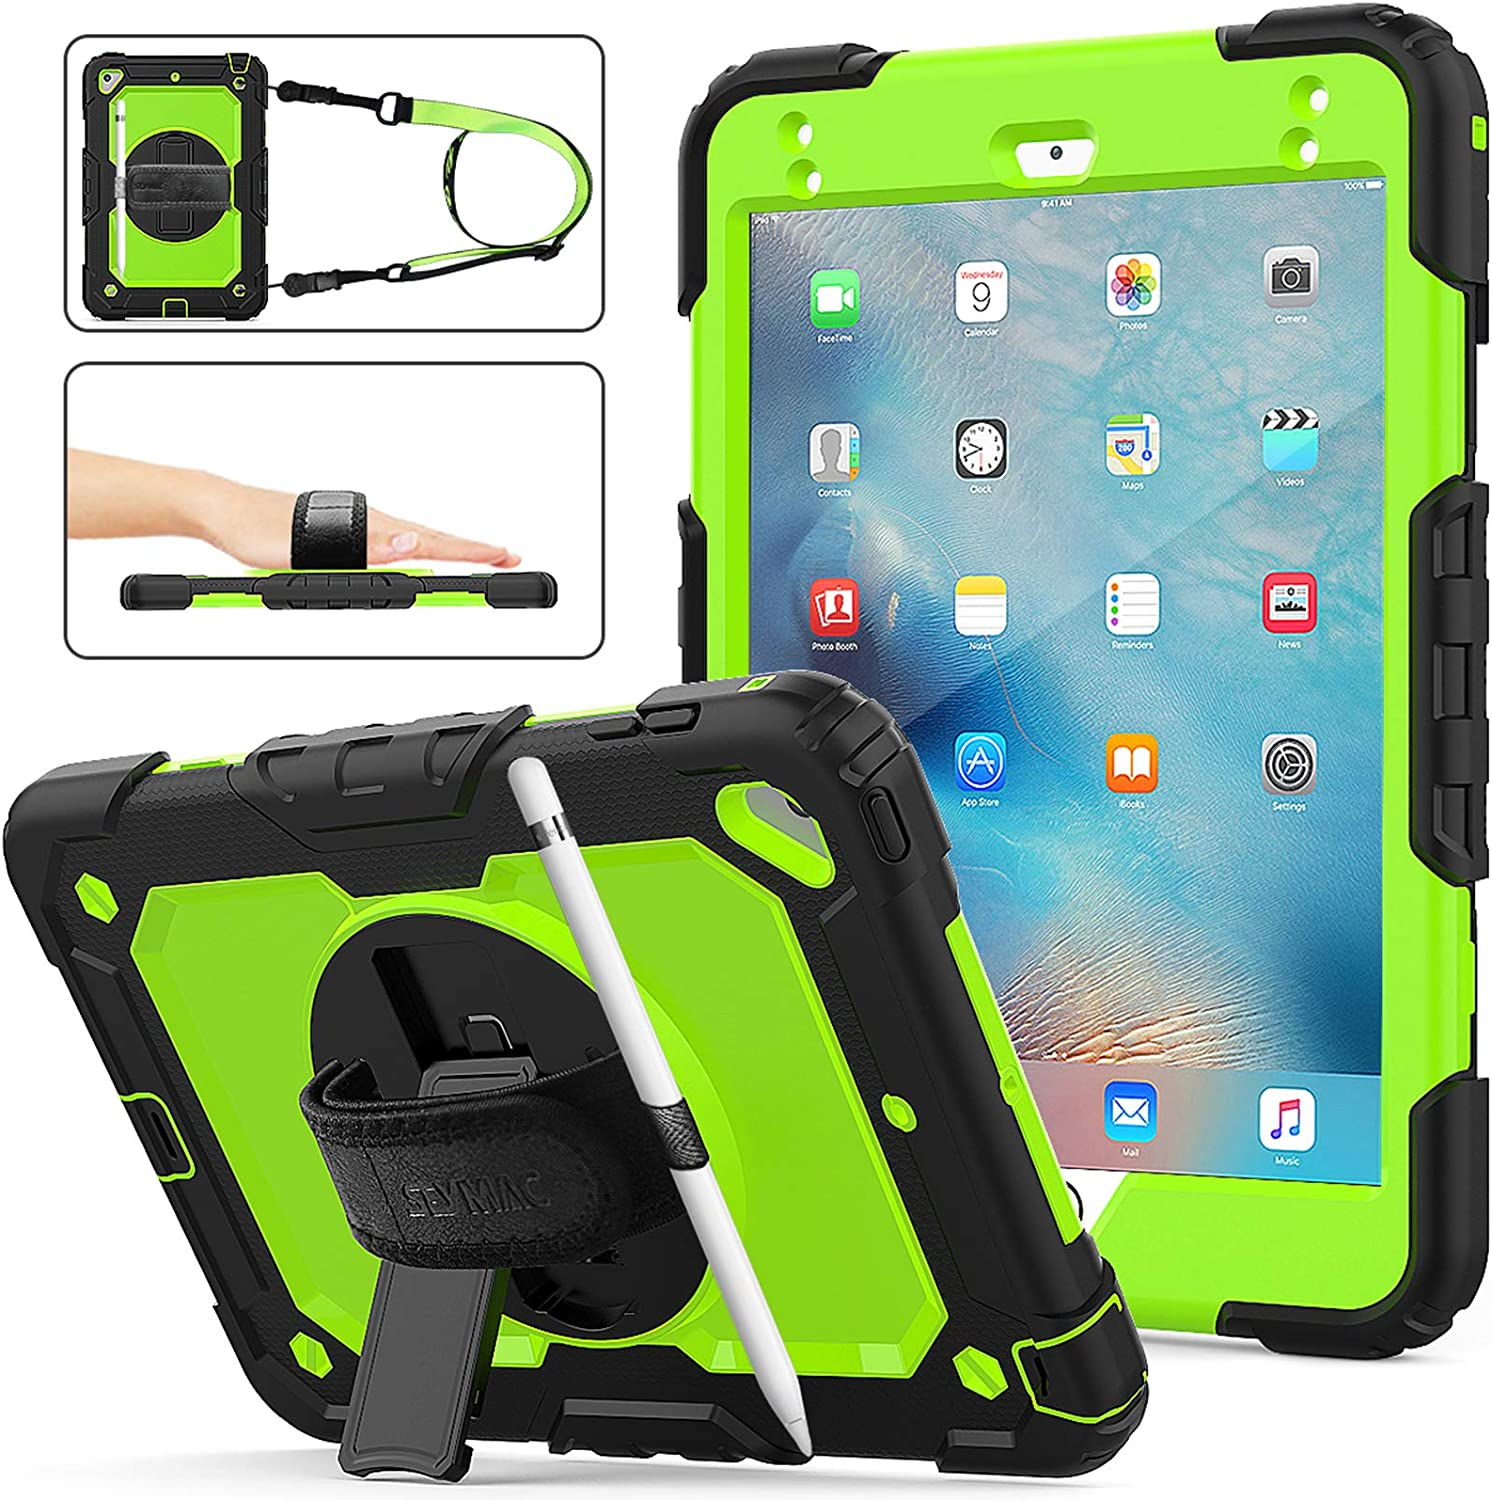 iPad Mini 5 Case,iPad Mini 4 Case, SEYMAC Stock [Full-Body] Drop Proof &Shockproof Armor Case with 360 Rotating Stand [Pencil Holder] Screen Protector Hand Strap for iPad Mini 4/5 (Green+Black)